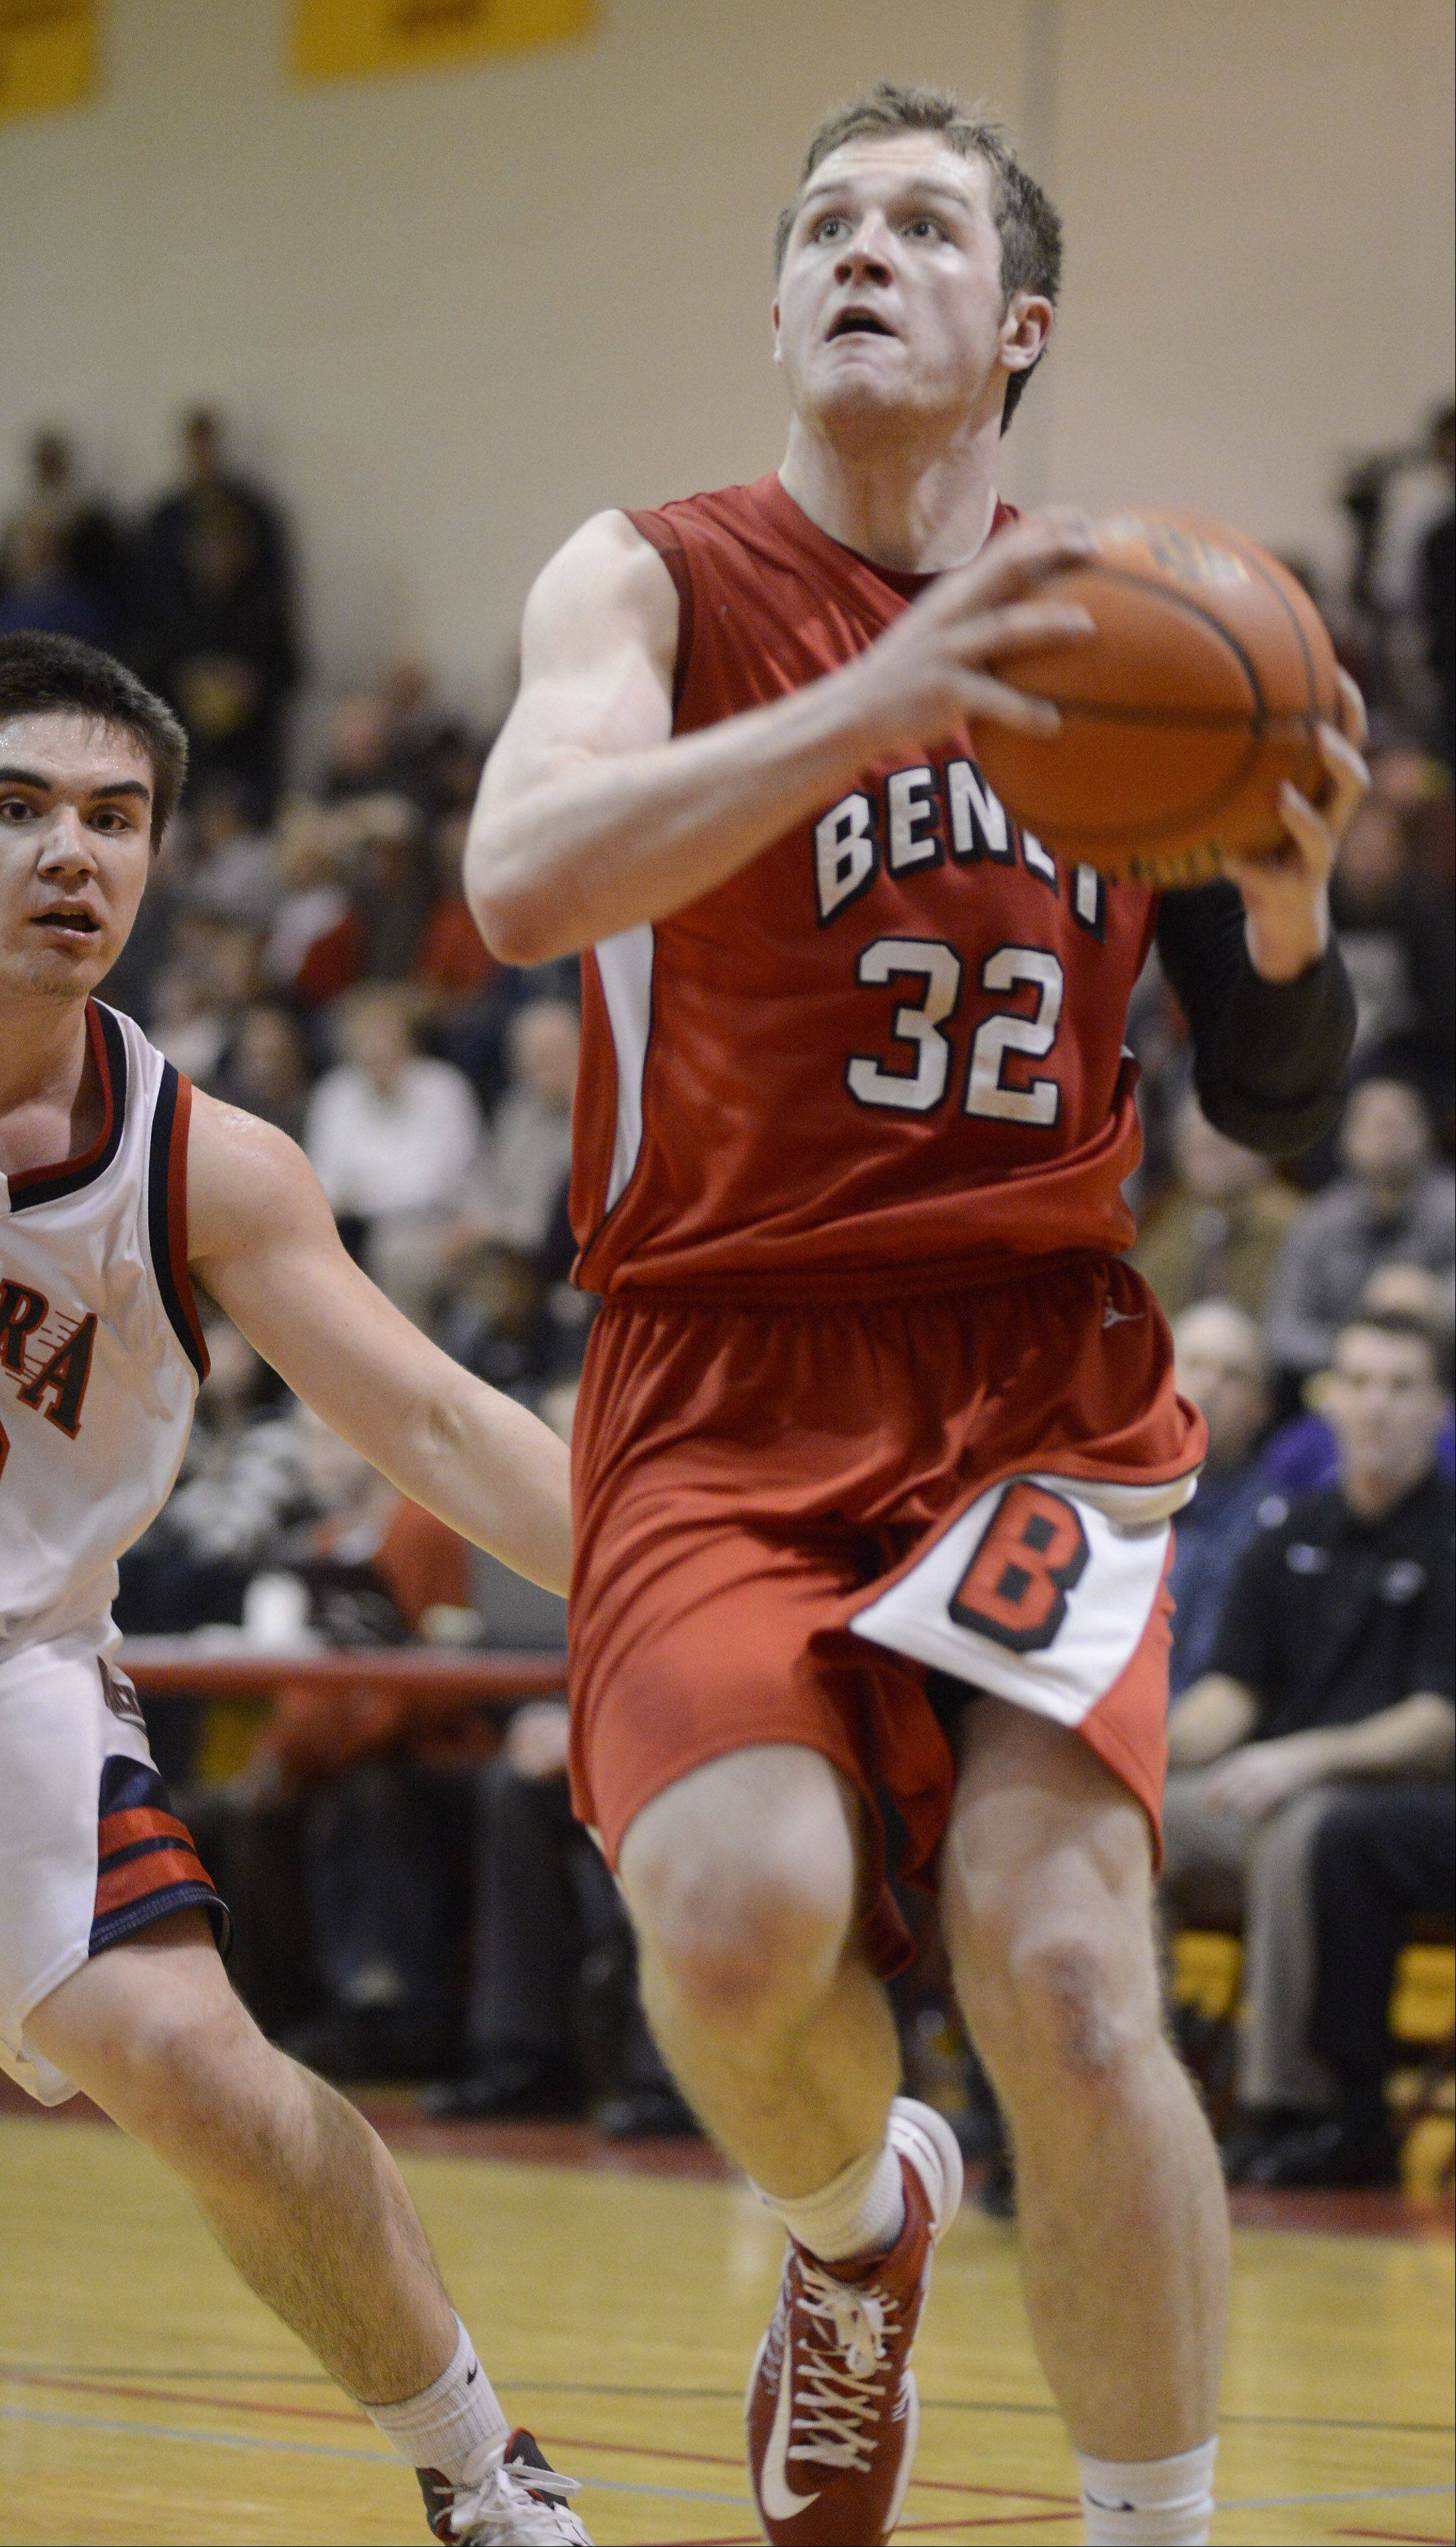 Benet Academy's Pat McInerney drives to the basket against West Aurora during the 20th anniversary Night of Hoops at Batavia High School Saturday night.